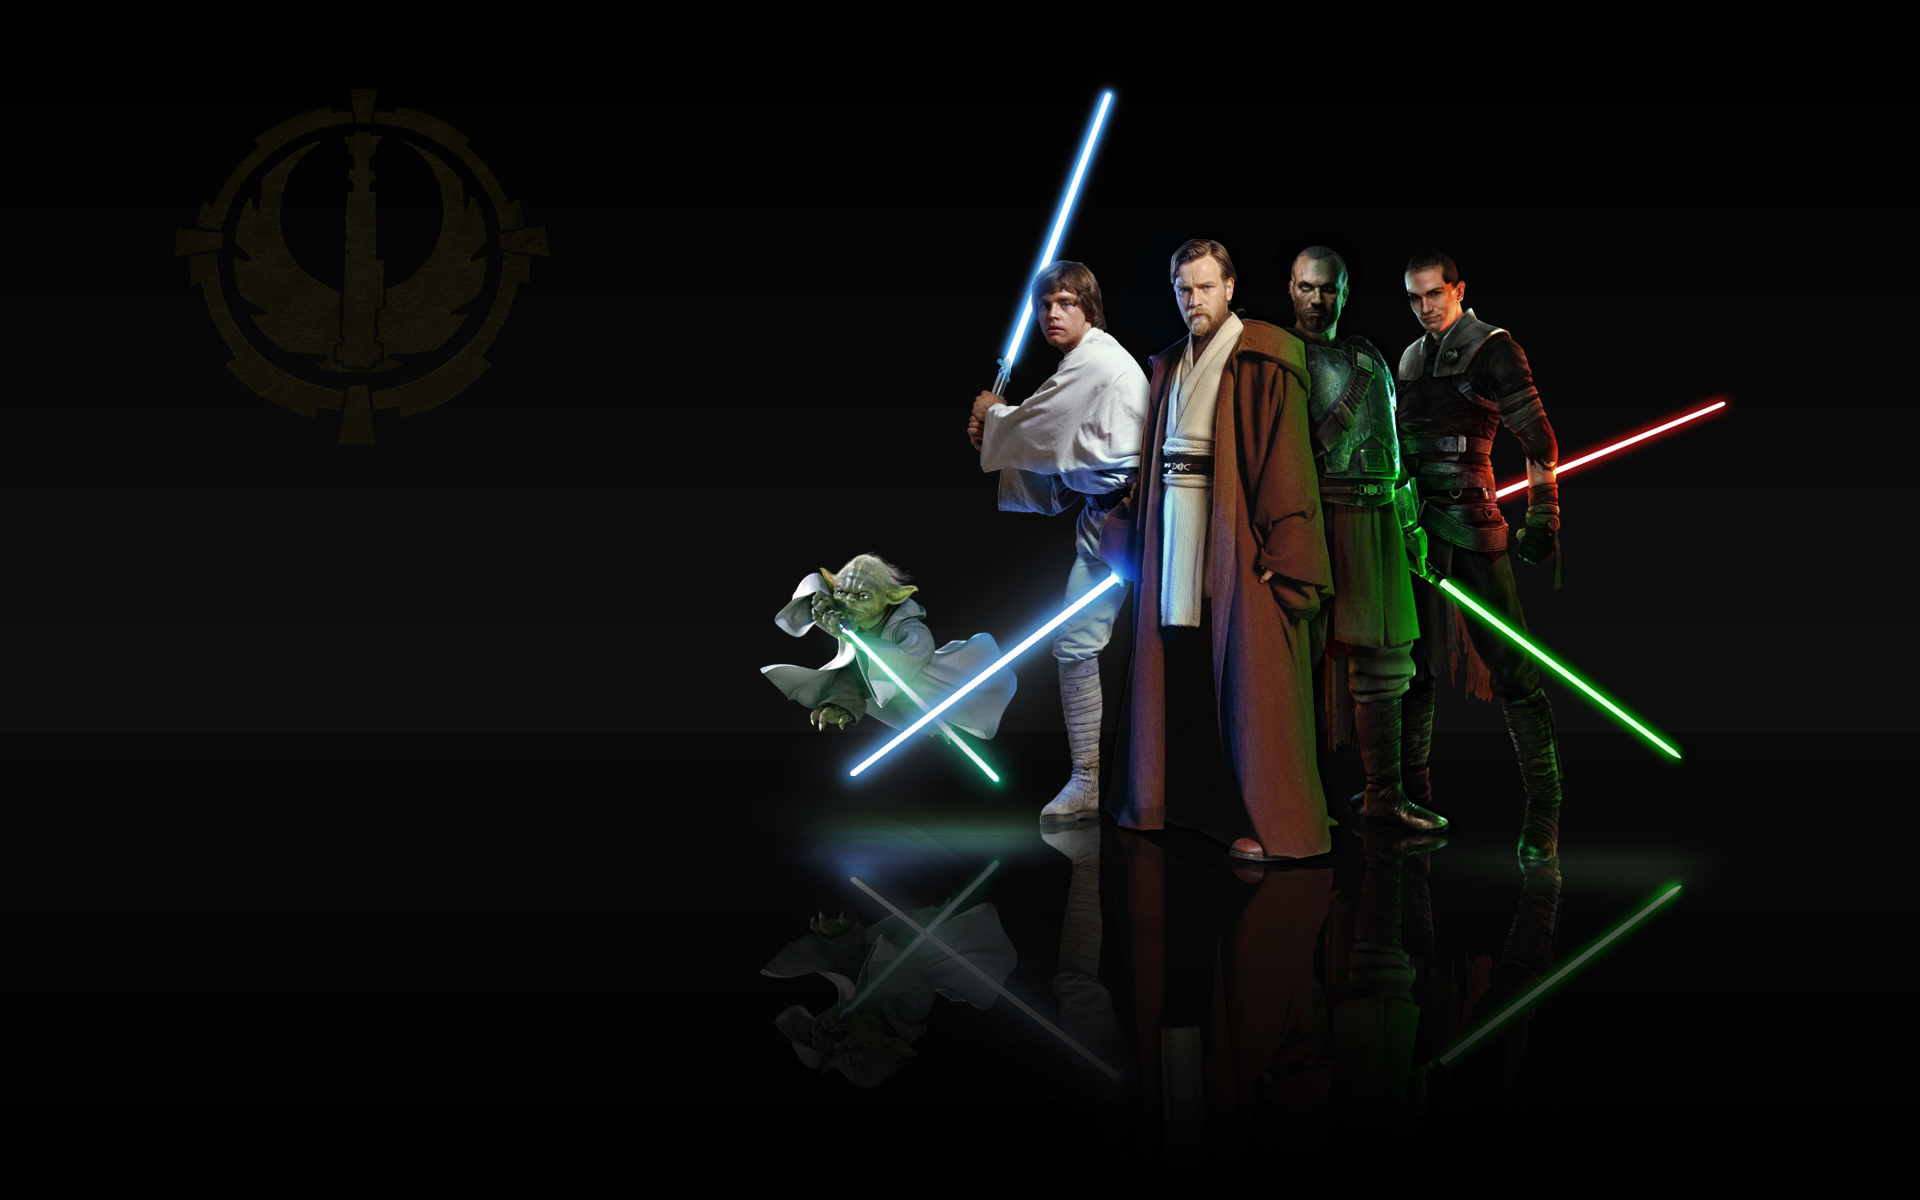 Star Wars Wallpaper by LastChildofGallifrey 1920x1200